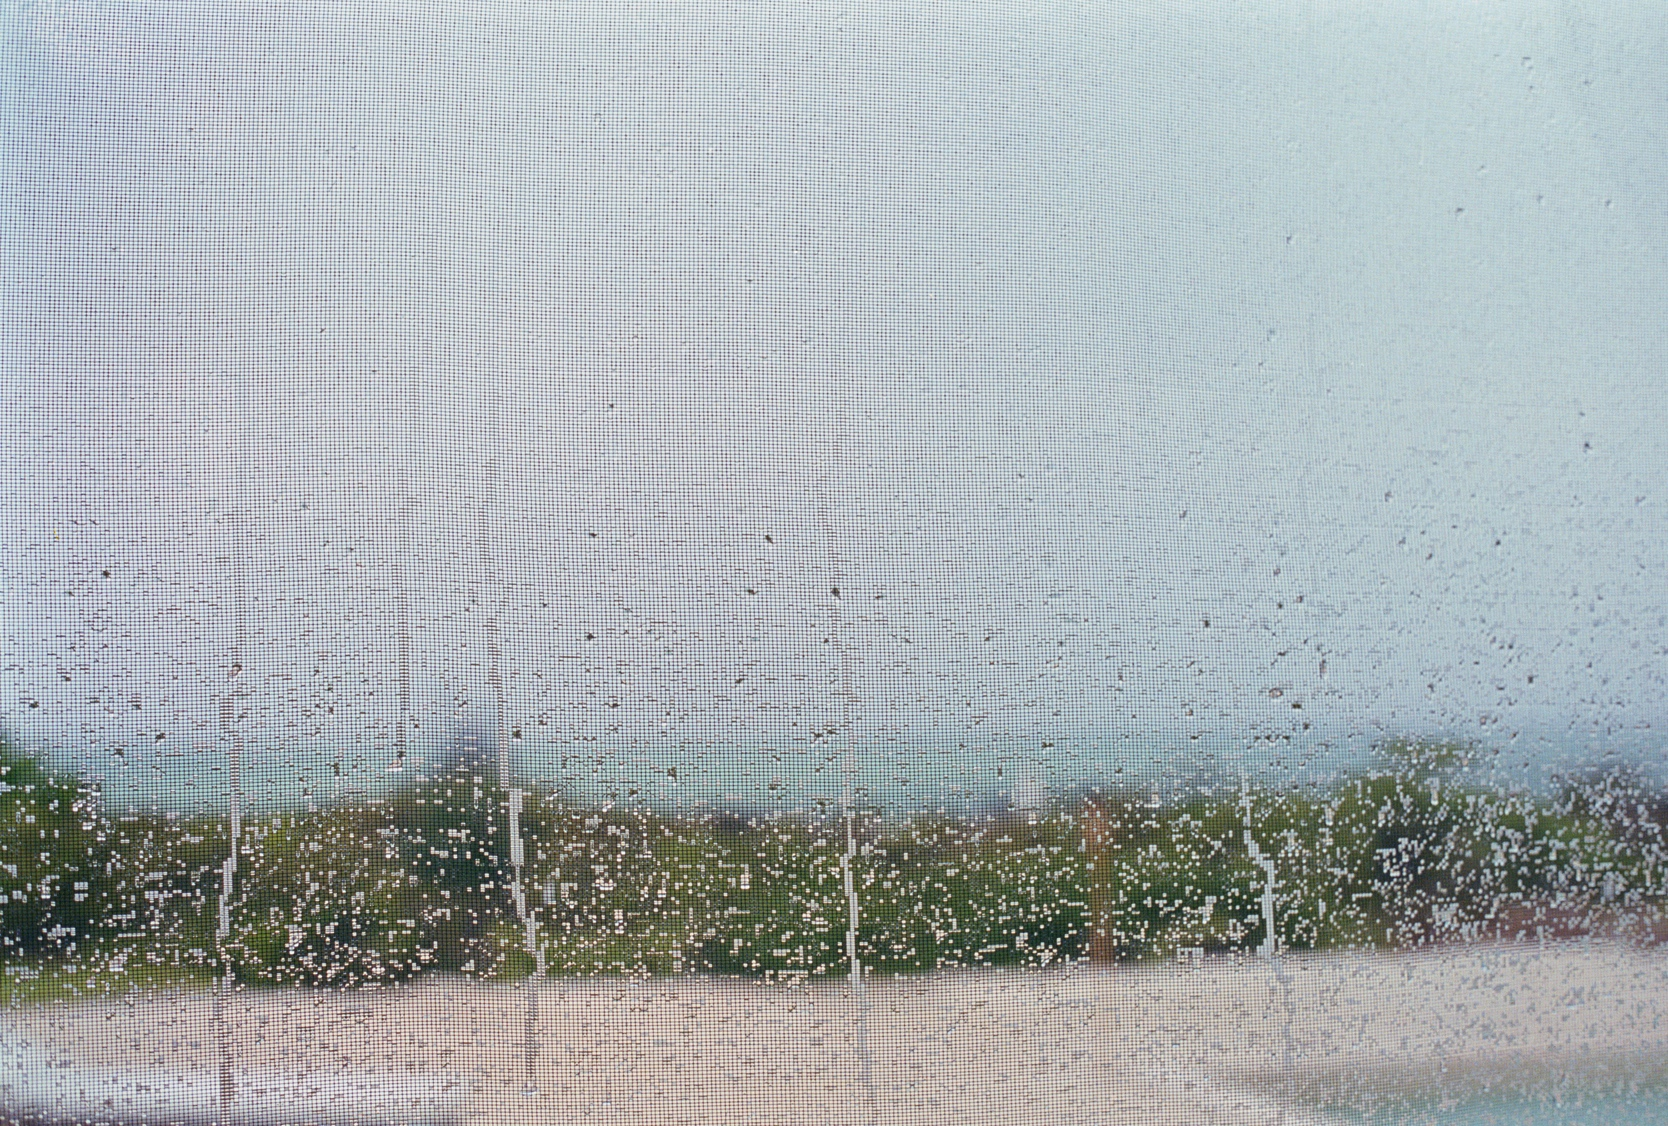 Untitled (Screen I), 2001 /  archival pigment   print, 27  x 40   inches  ,  edition of 5 plus 2 AP